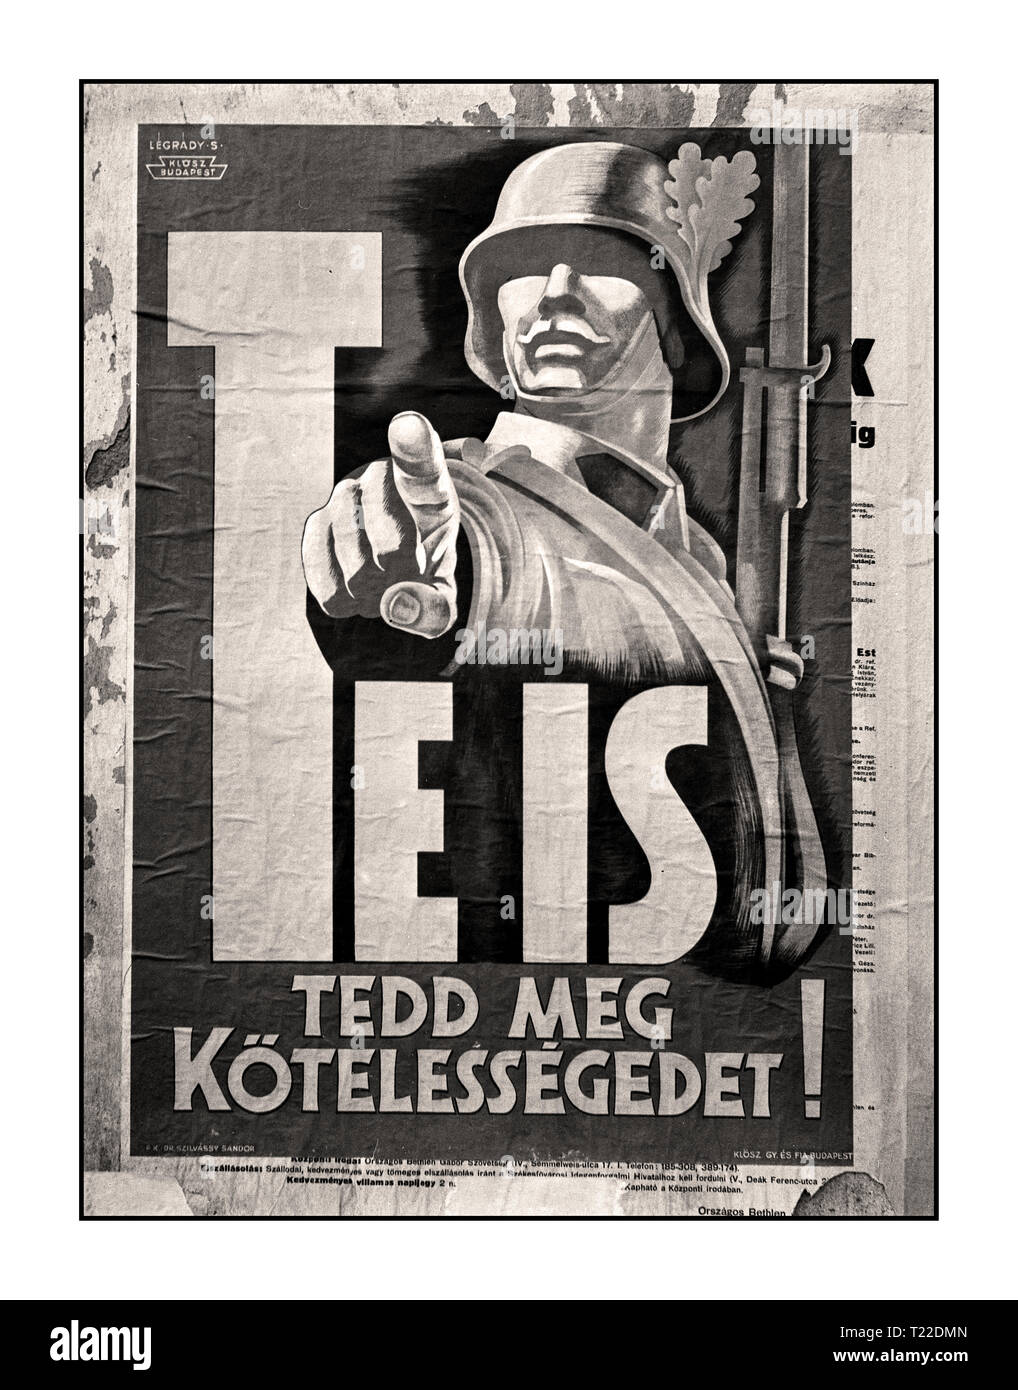 Vintage WW2 B&W Street Poster 'Comrade you can do it' 'You also do your duty!' Budapest 1940's recruitment poster, soldier, Sándor Légrády-graphics 1942 Hungary In 1940, under pressure from Nazi Germany, Hungary joined the Facist Axis powers. The following year, Hungarian forces participated in the invasion of Yugoslavia and the invasion of the Soviet Union. - Stock Image